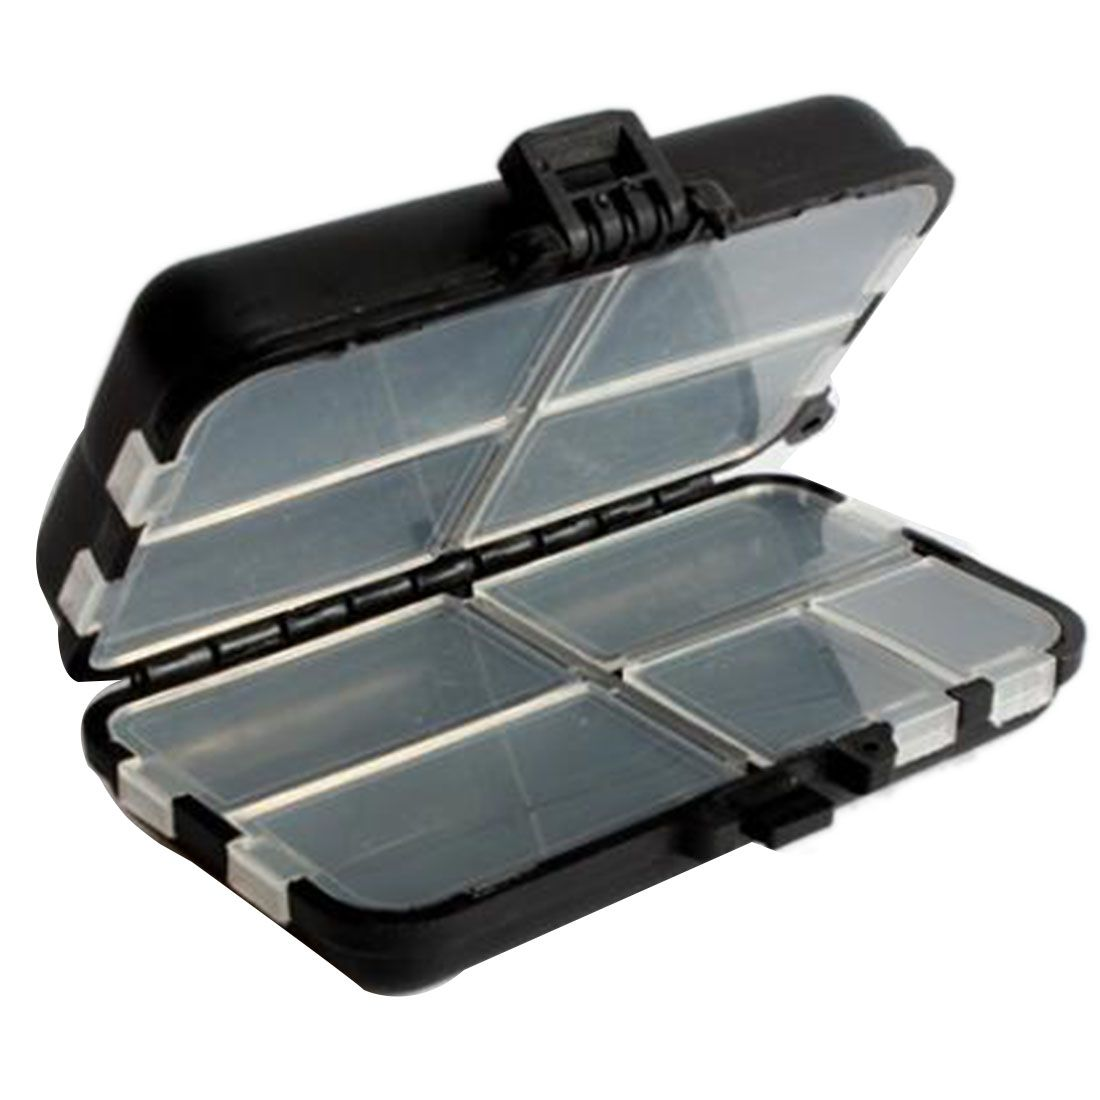 Hot Fishing Lure Bait Tackle Storage Box Case With 9 Compartment For Storing Swivels Free Shipping